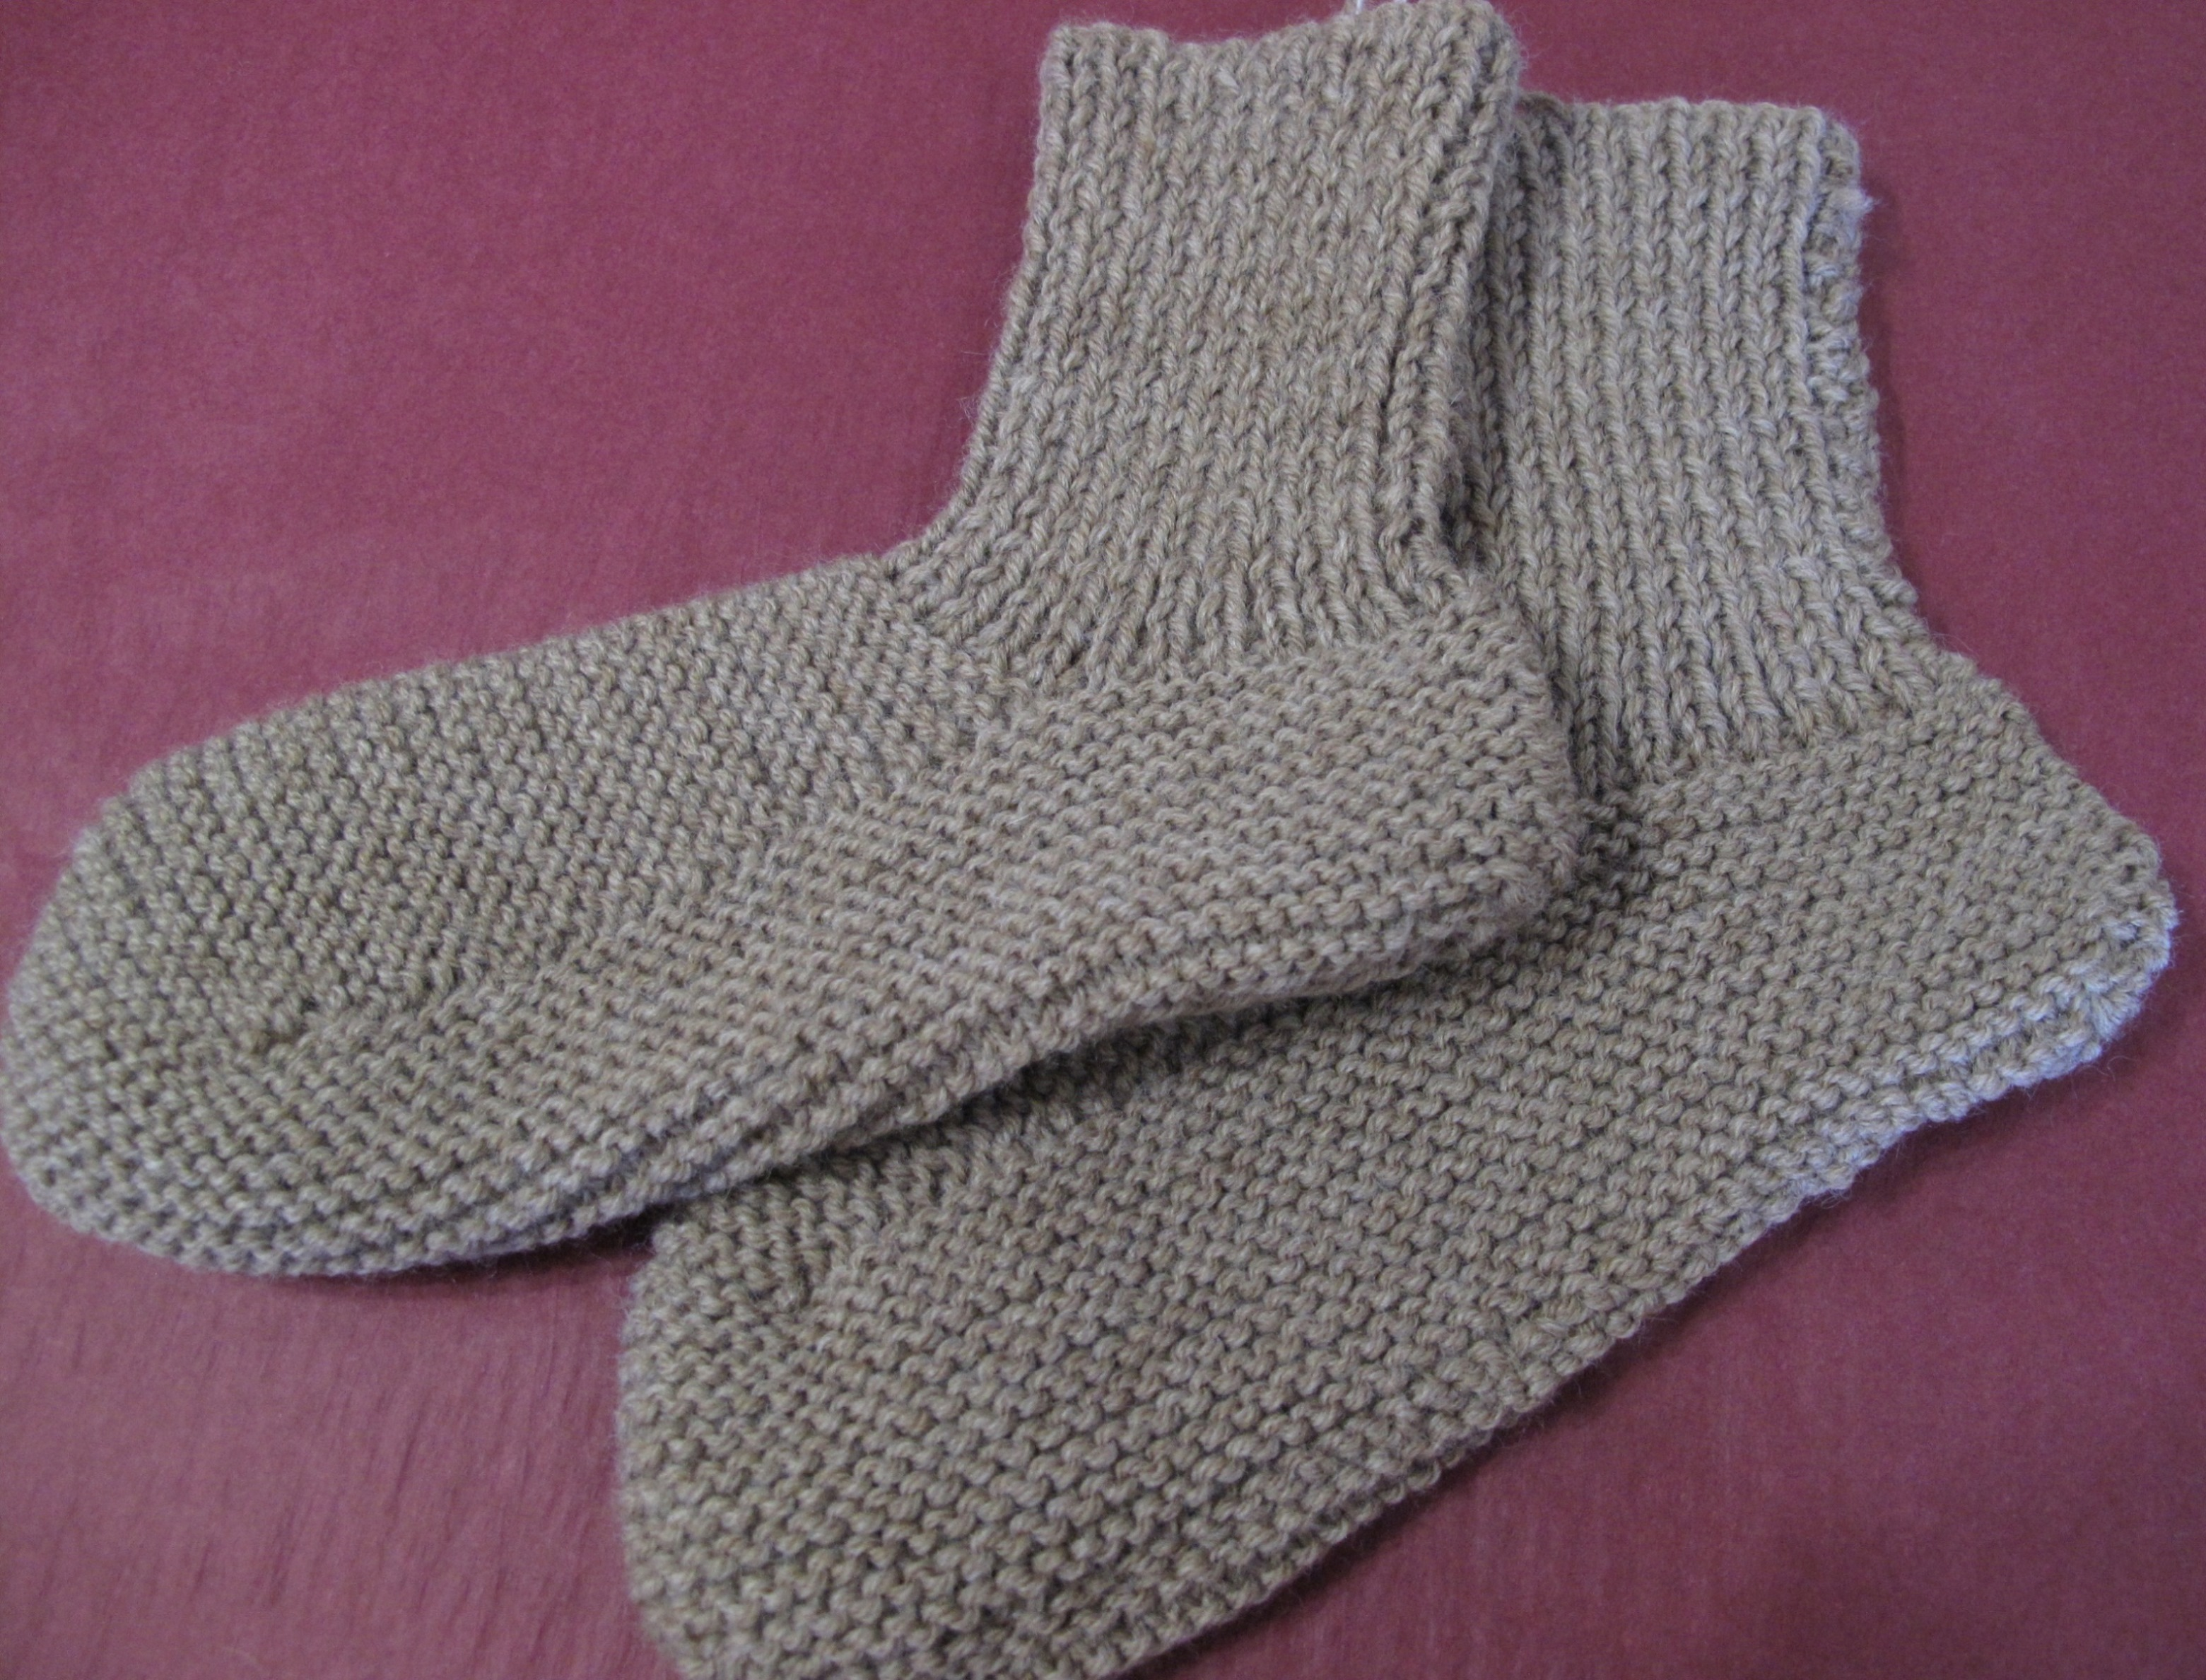 Knitted bedsocks